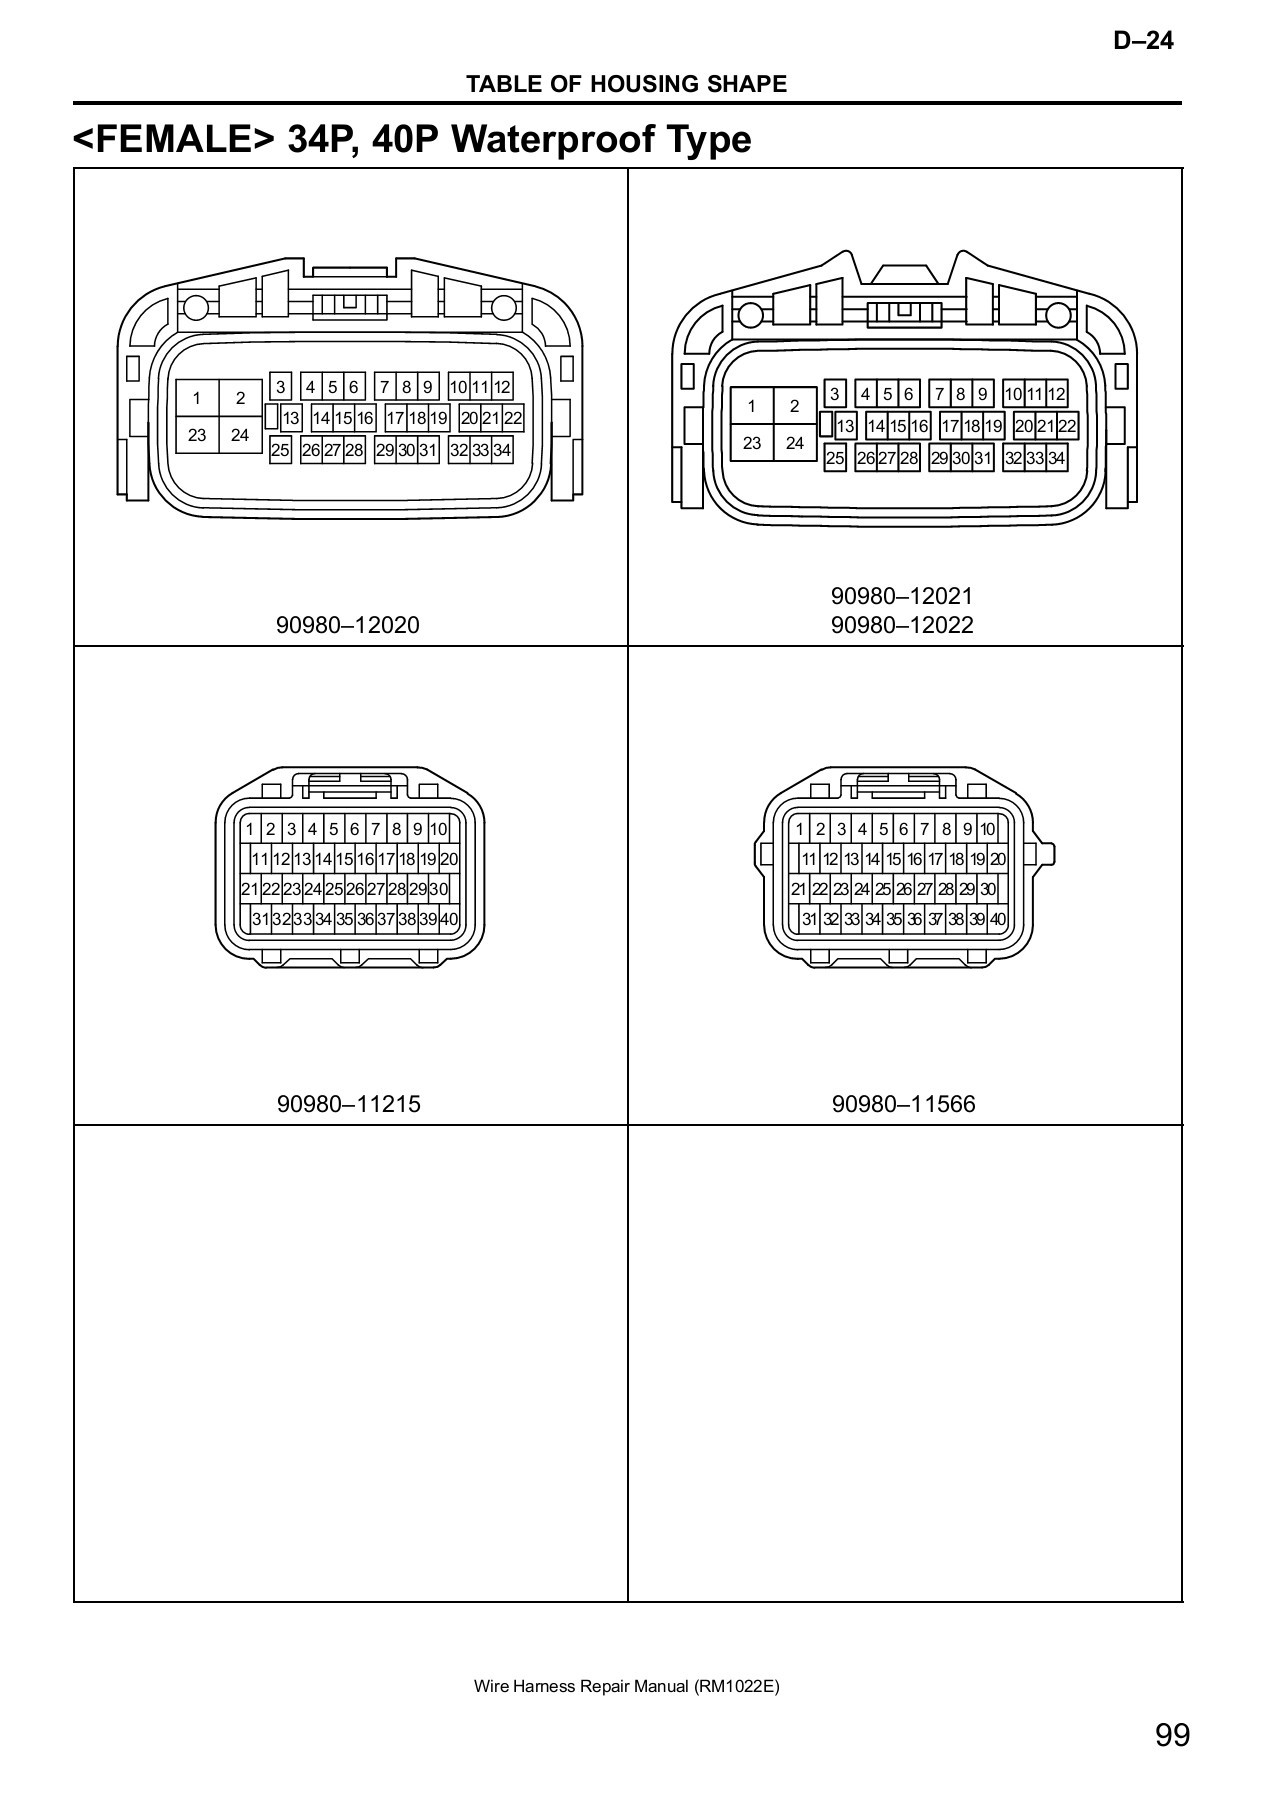 medium resolution of toyota wiring repair manual pdfdrive com pages 101 150 text version fliphtml5